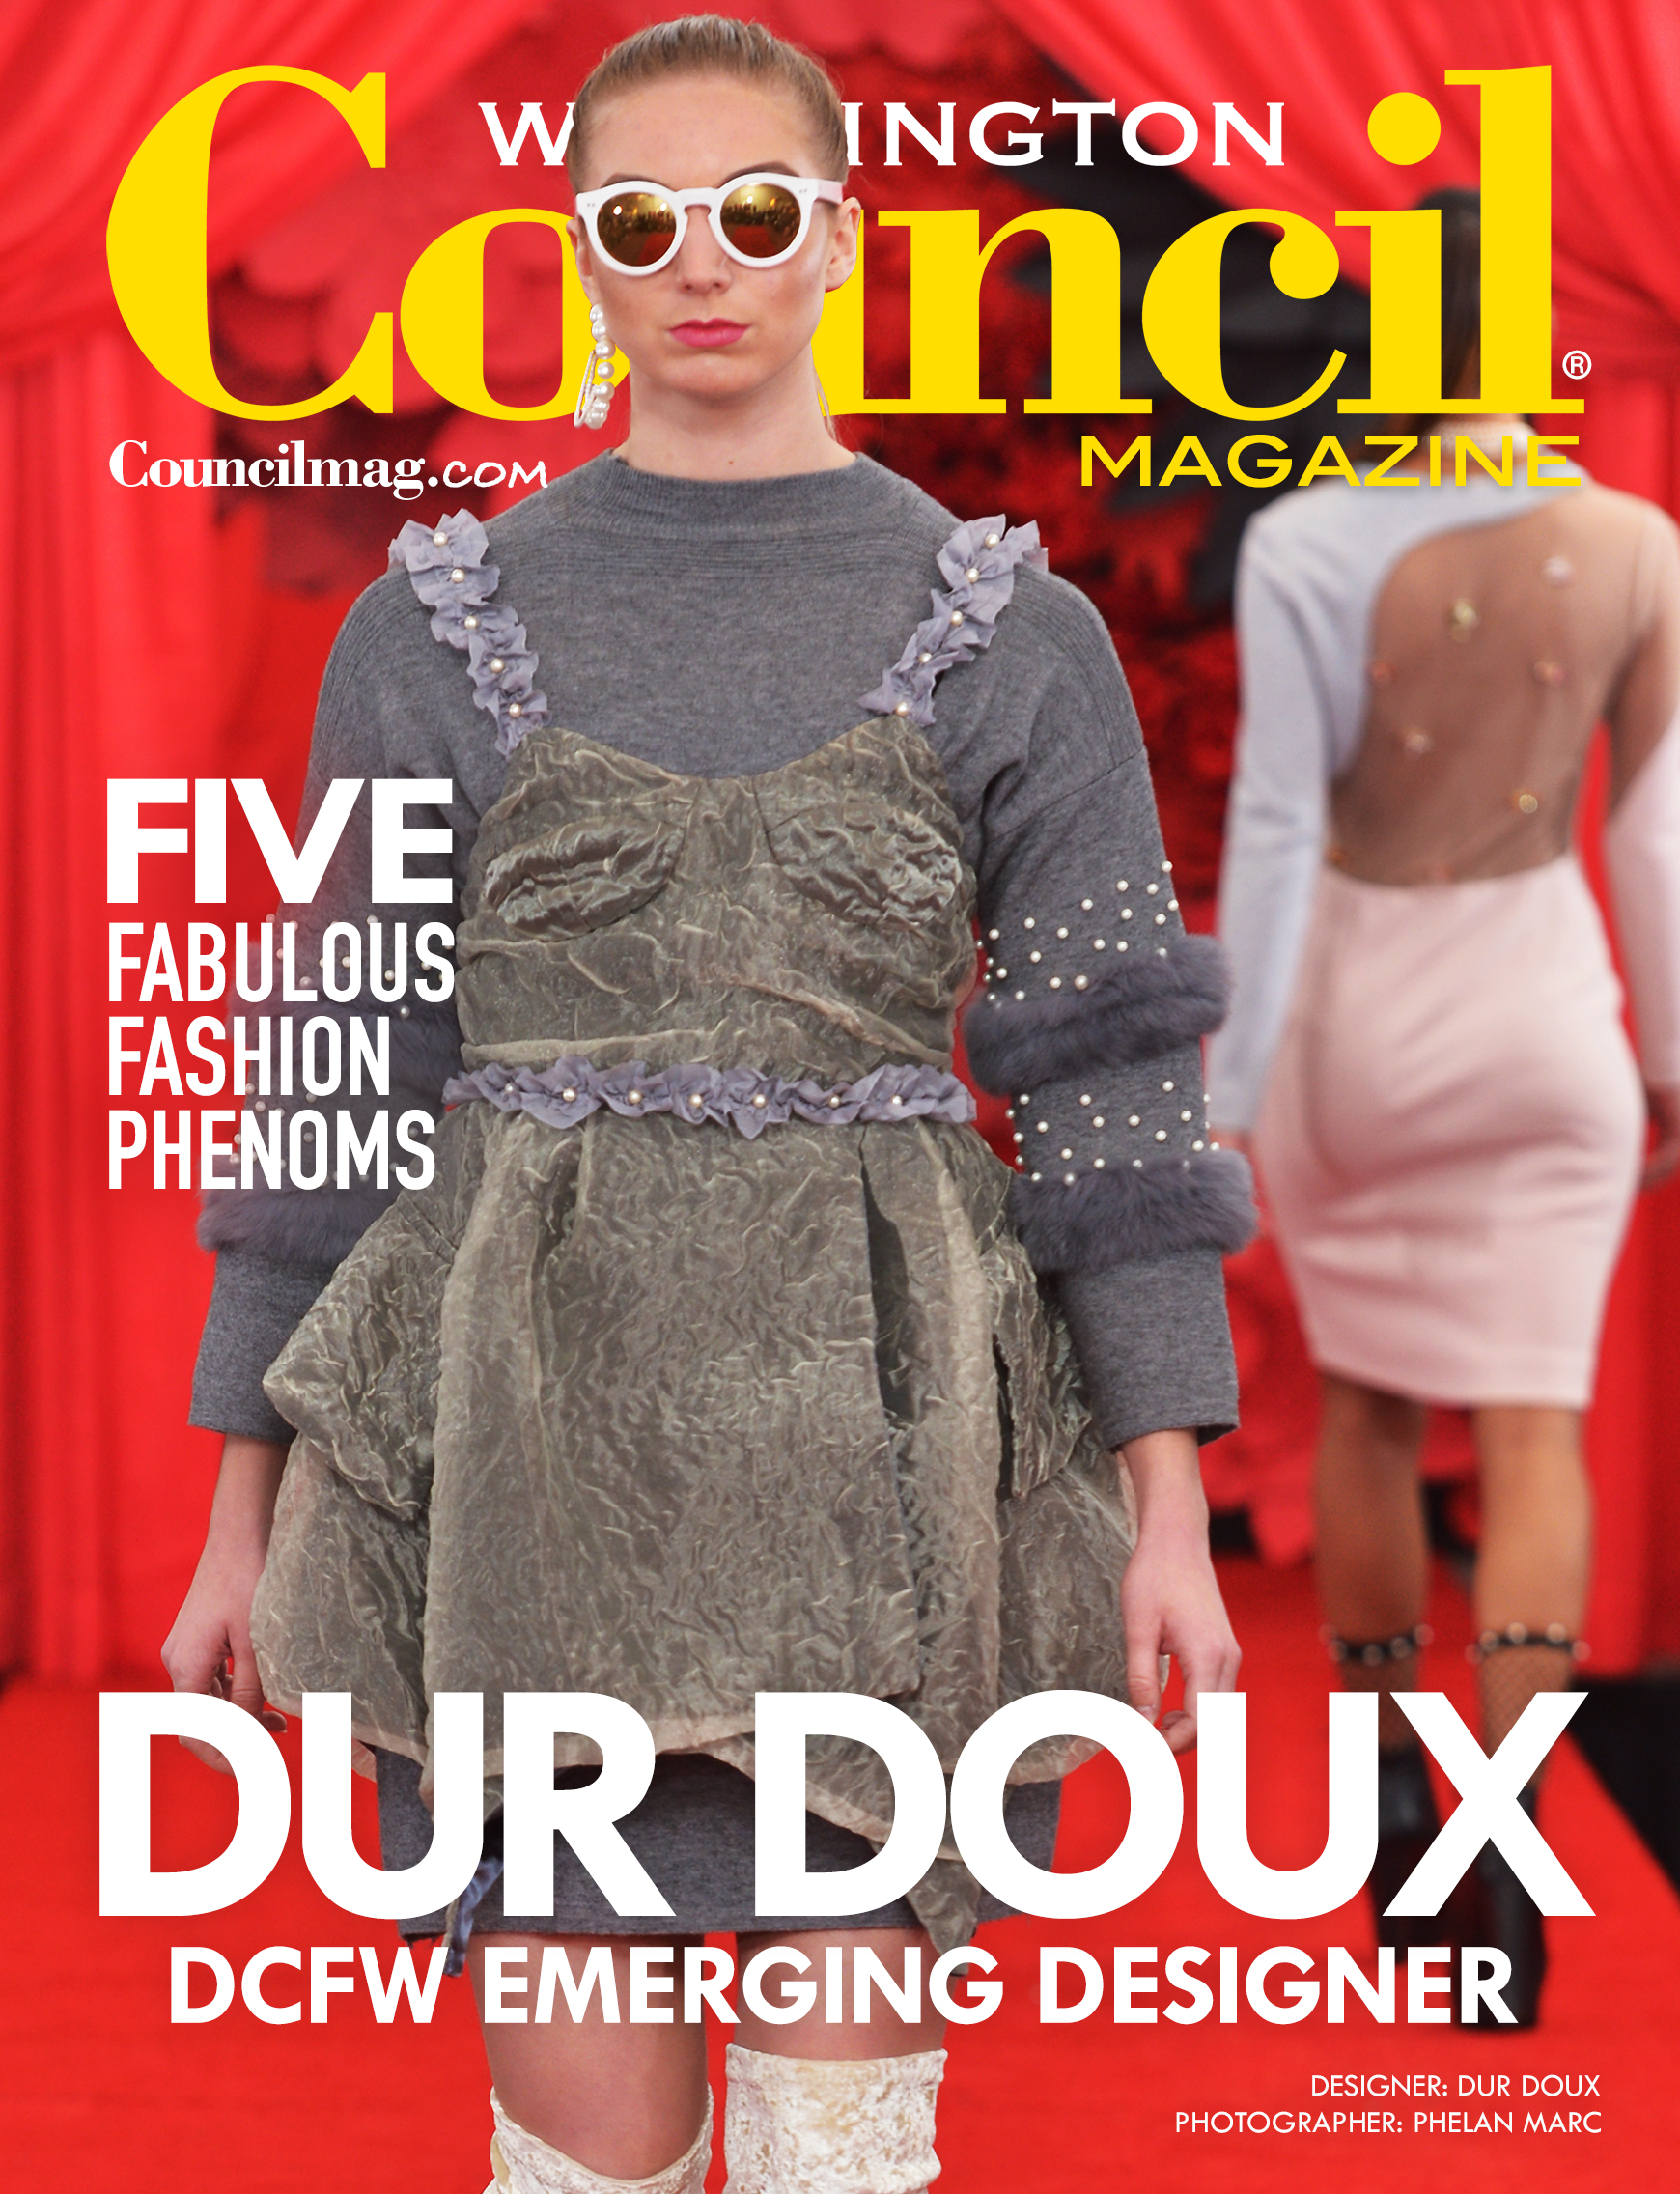 Dur Doux was the March 2018 cover story that featured multiple designers from DC Fashion Week.